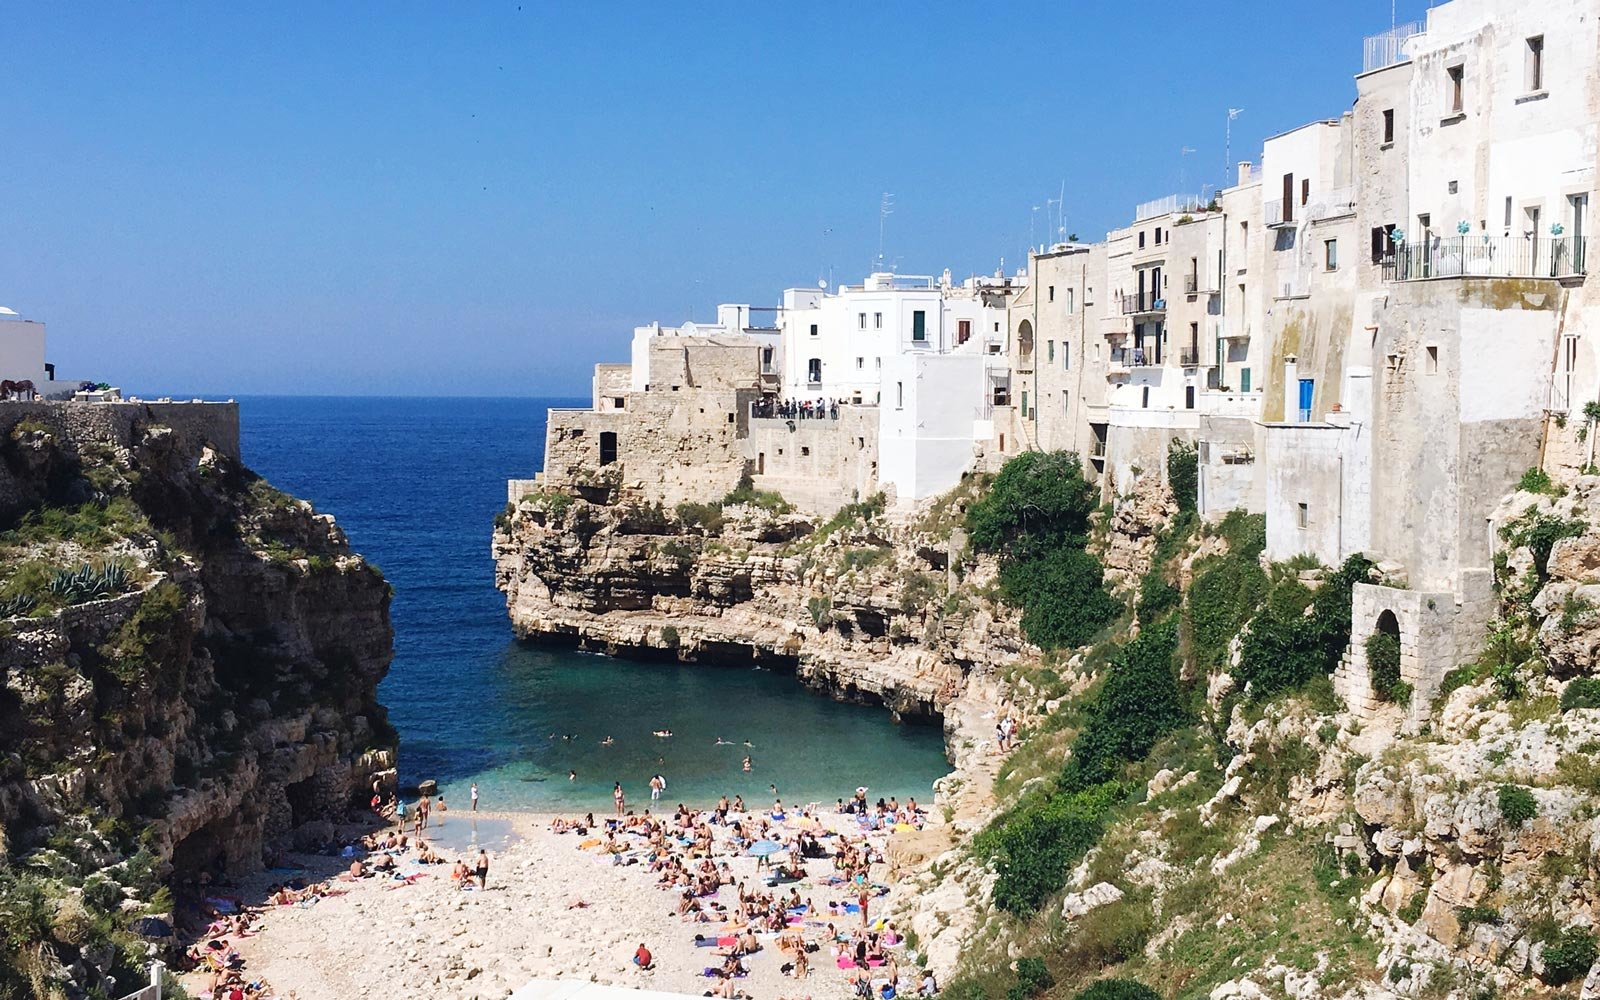 Explore Matera, the Lucan Dolomites and Polignano a Mare on this southern Italian trip